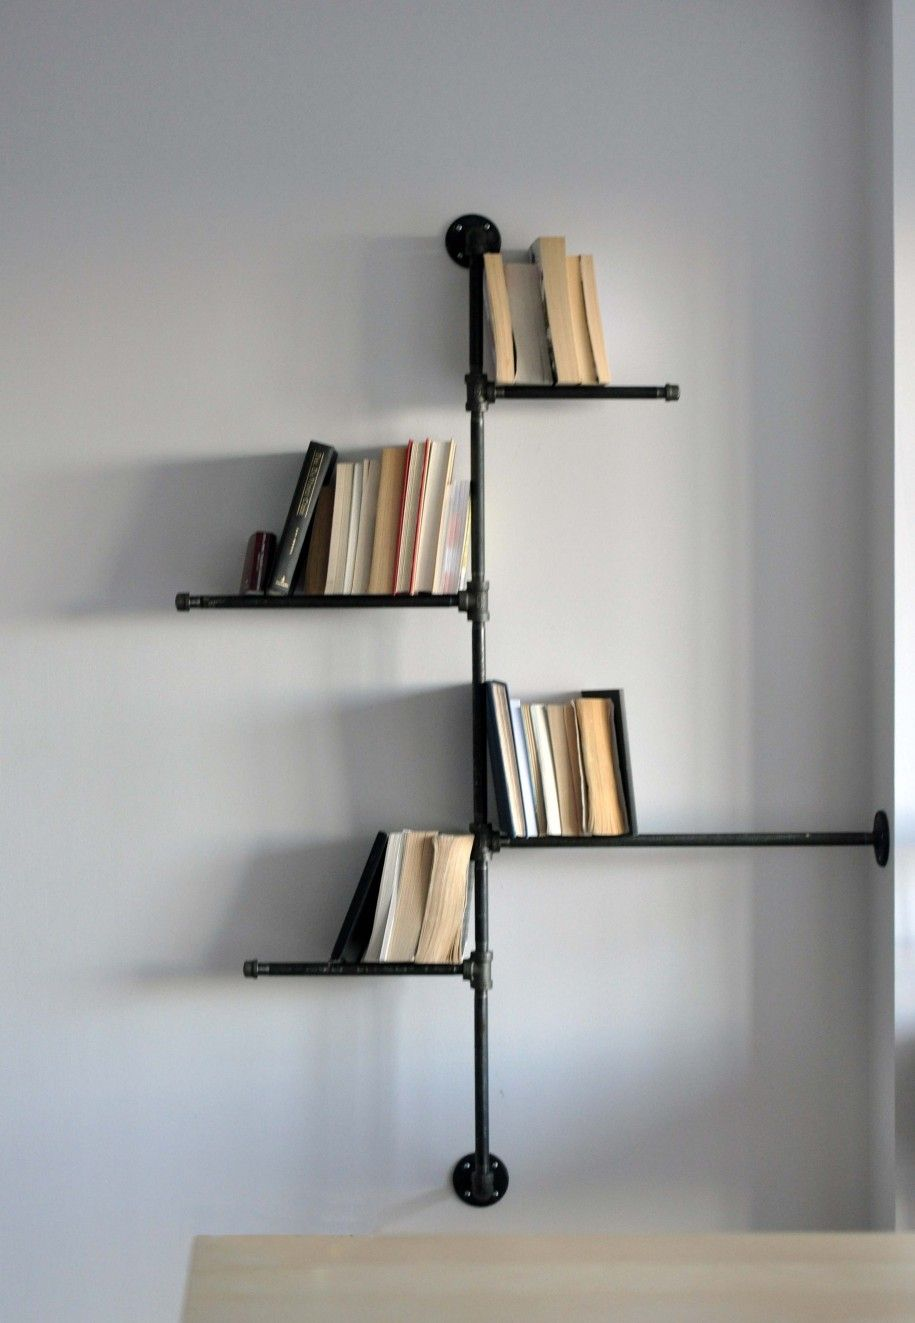 Home accessories astonishing black pipe wall mount Shelves design ideas